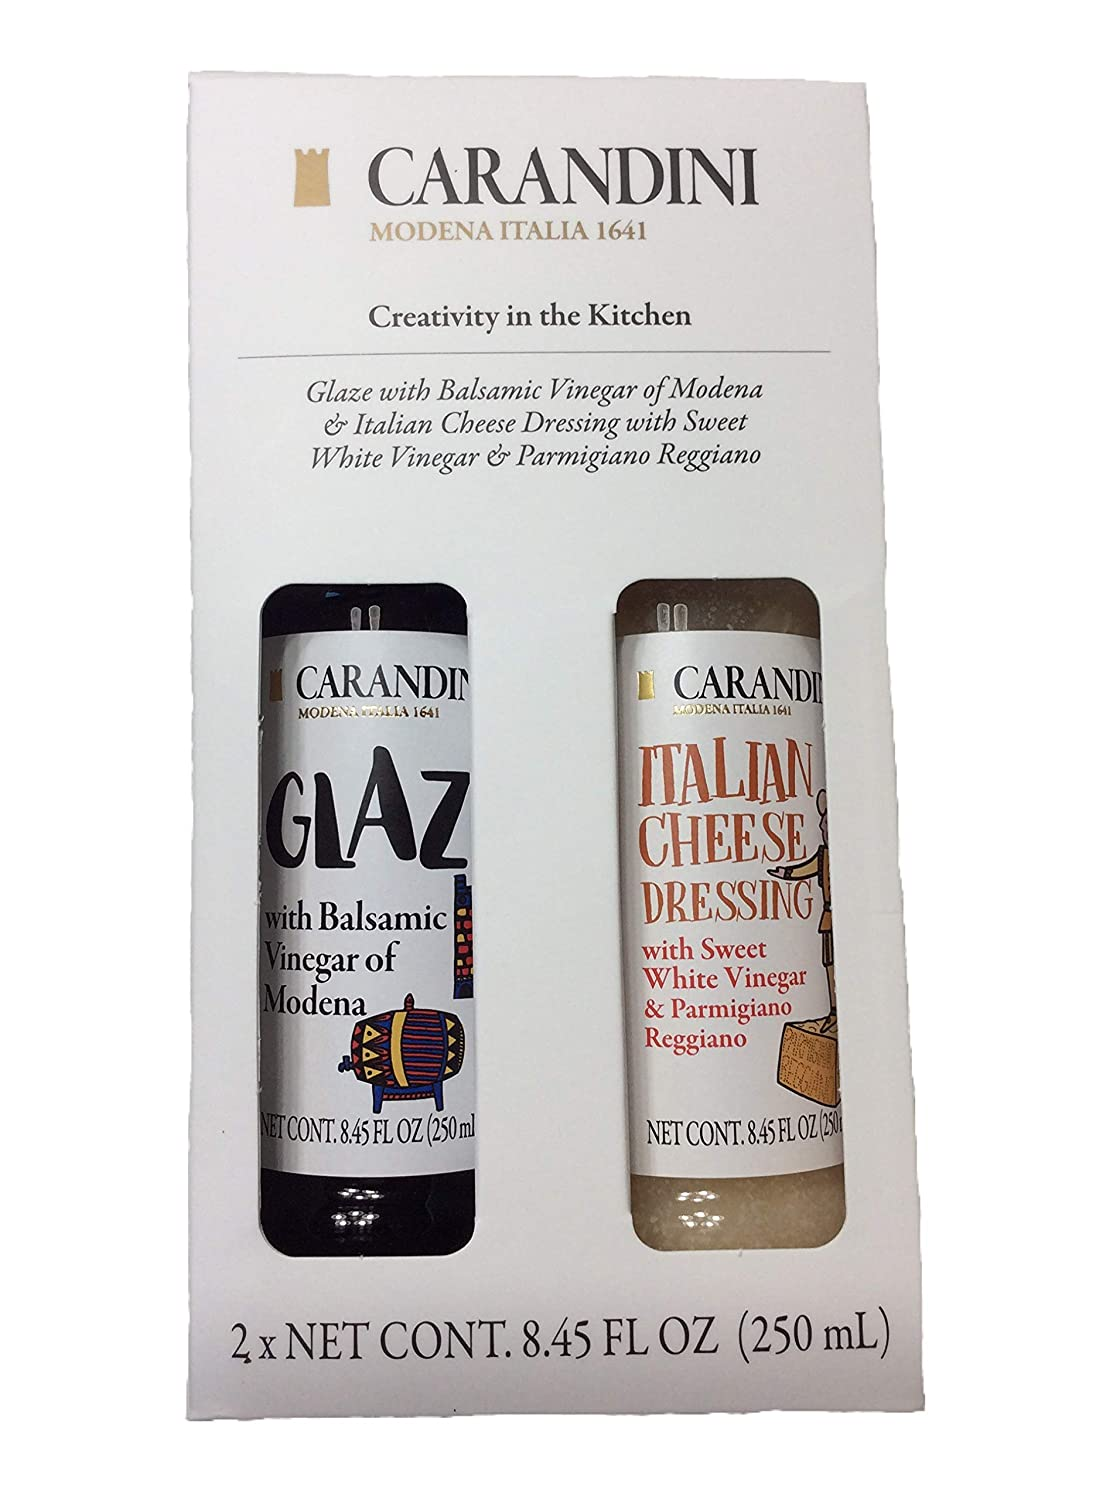 Glaze with Balsamic Vinegar of Modena & Italian Cheese Dressing with Sweet White Vinegar/Parmigiano Reggiano Gift Pack